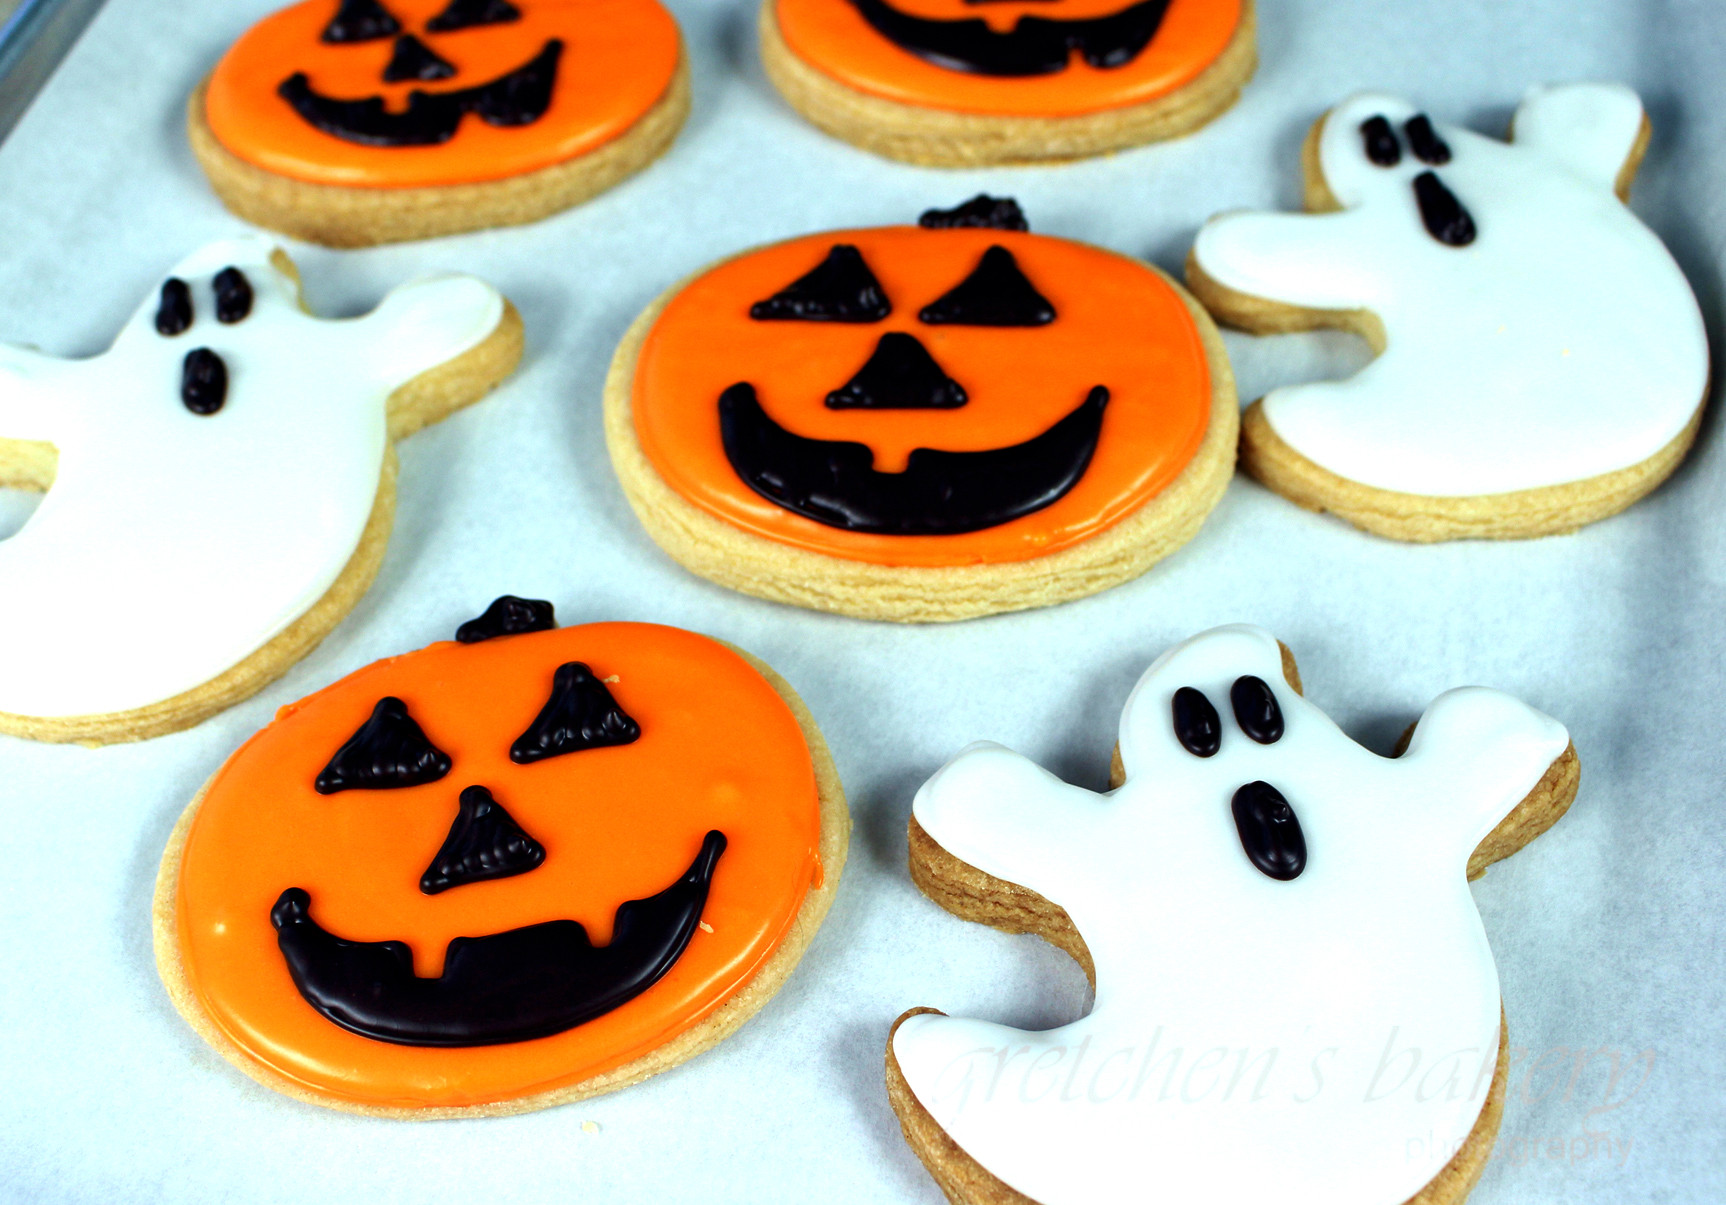 Halloween Sugar Cookies  Vegan Halloween Sugar Cookies Gretchen s Vegan Bakery